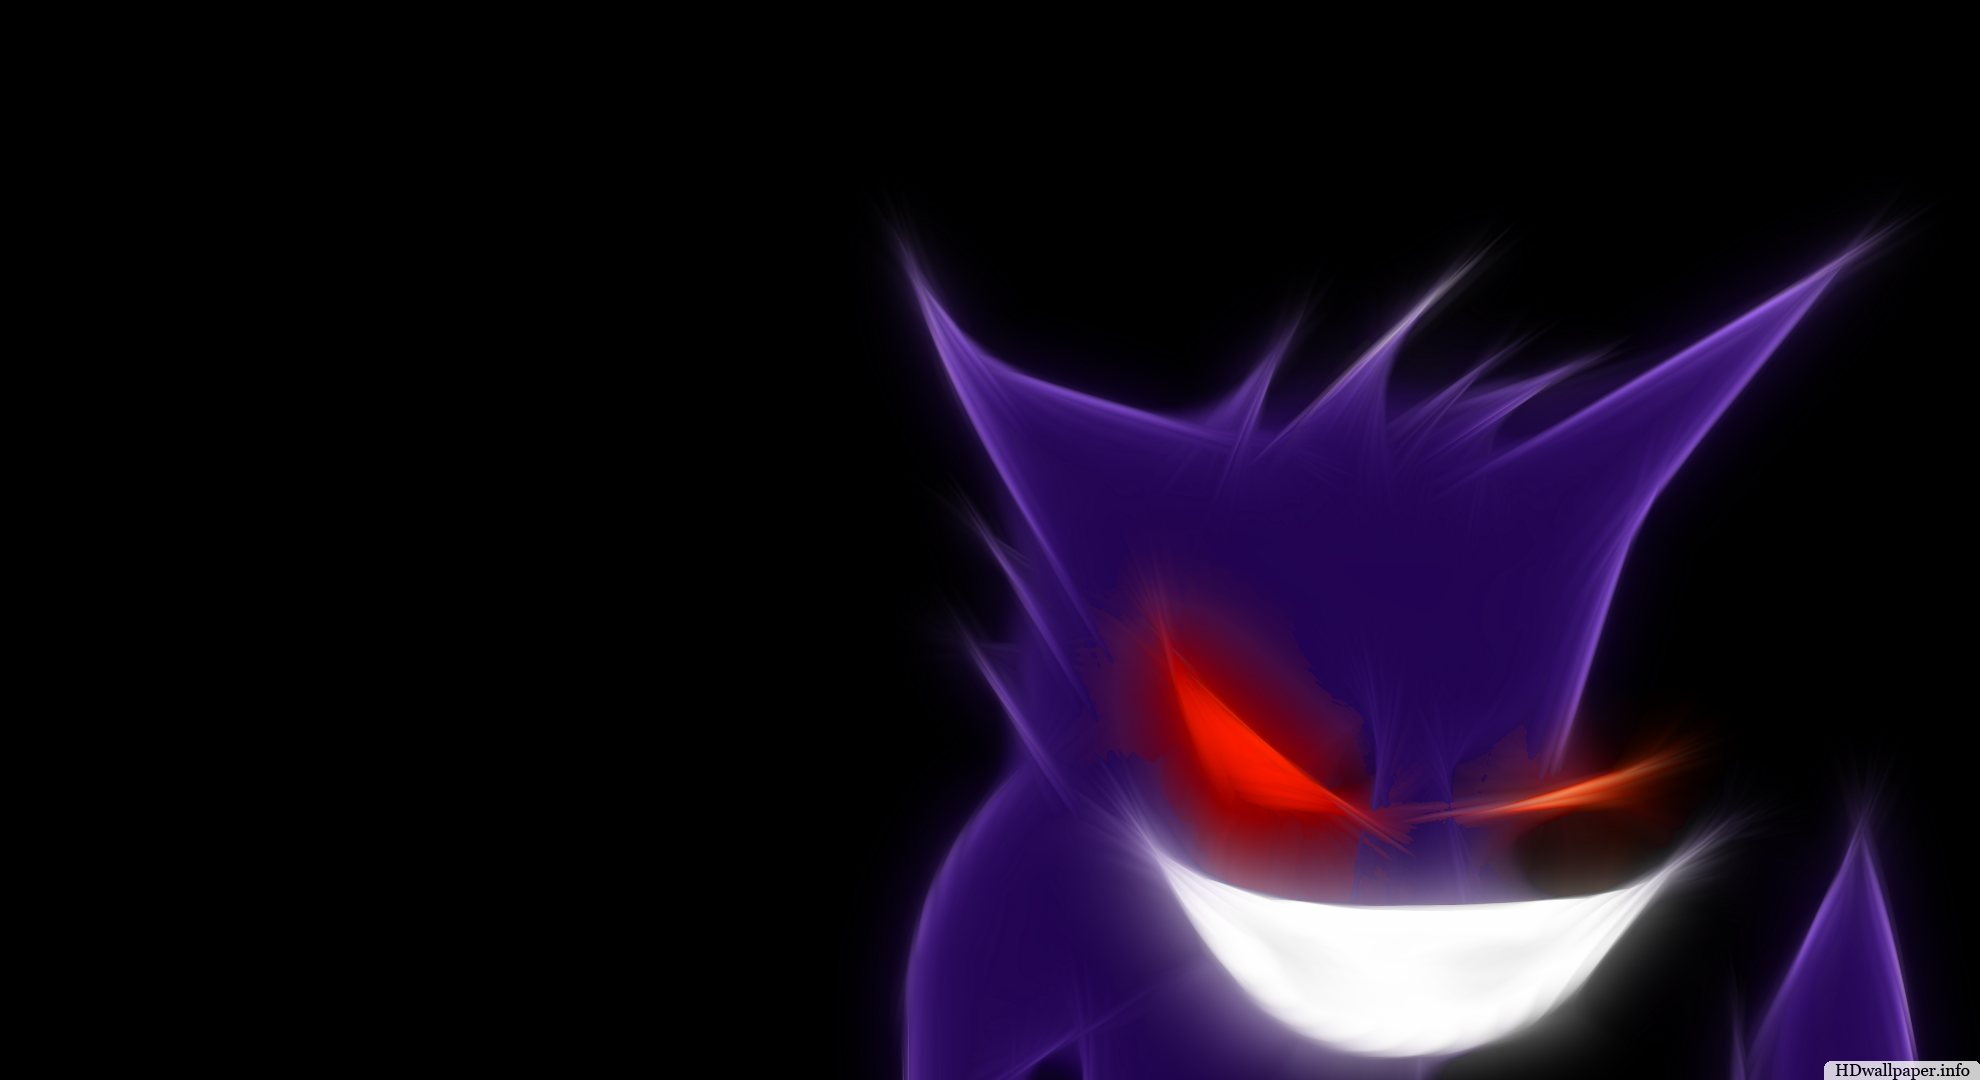 Wallpaper for your desktop s wallpaper gengar wallpaper high - Gengar Desktop Wallpaper Id 3301 Credit